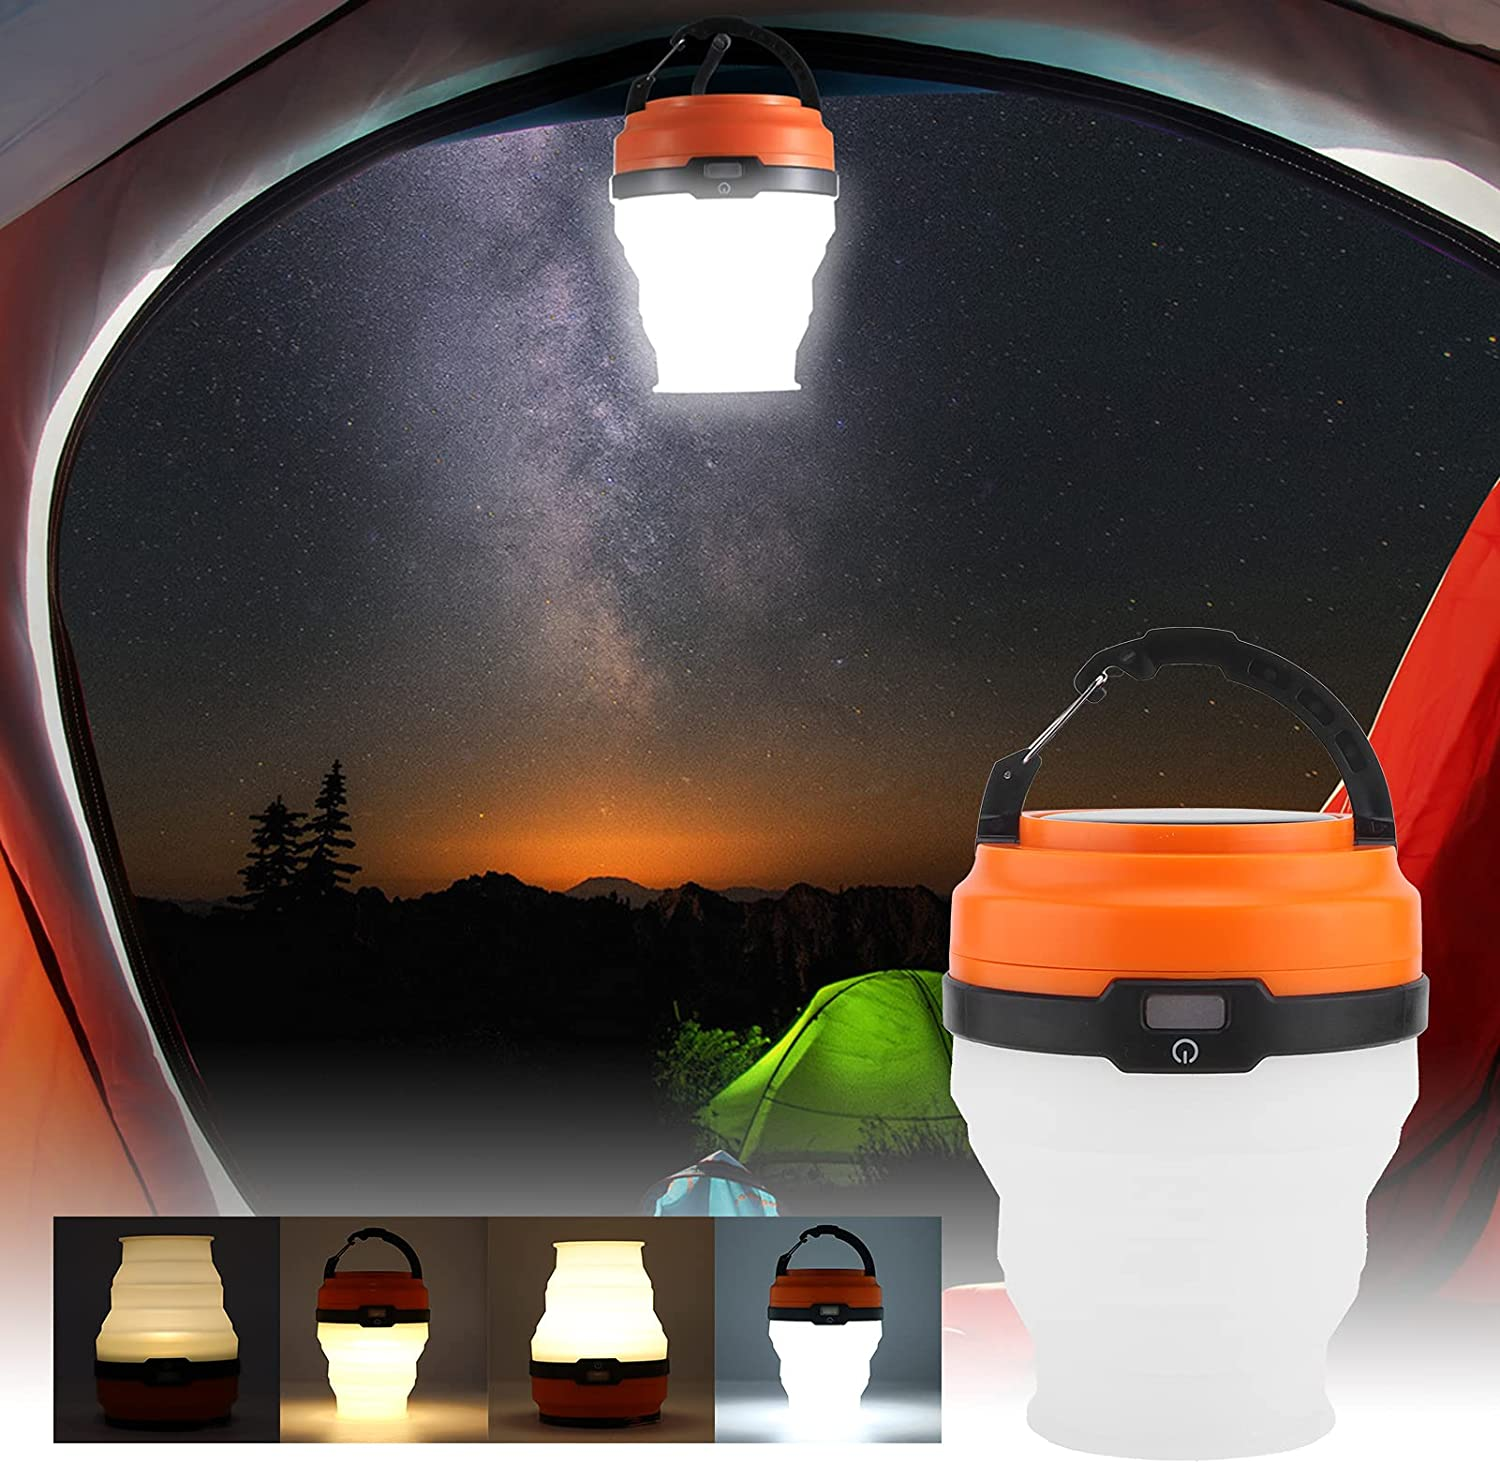 RBSD Camping Lamp Night Light Foldab Rechargeable Kansas Industry No. 1 City Mall